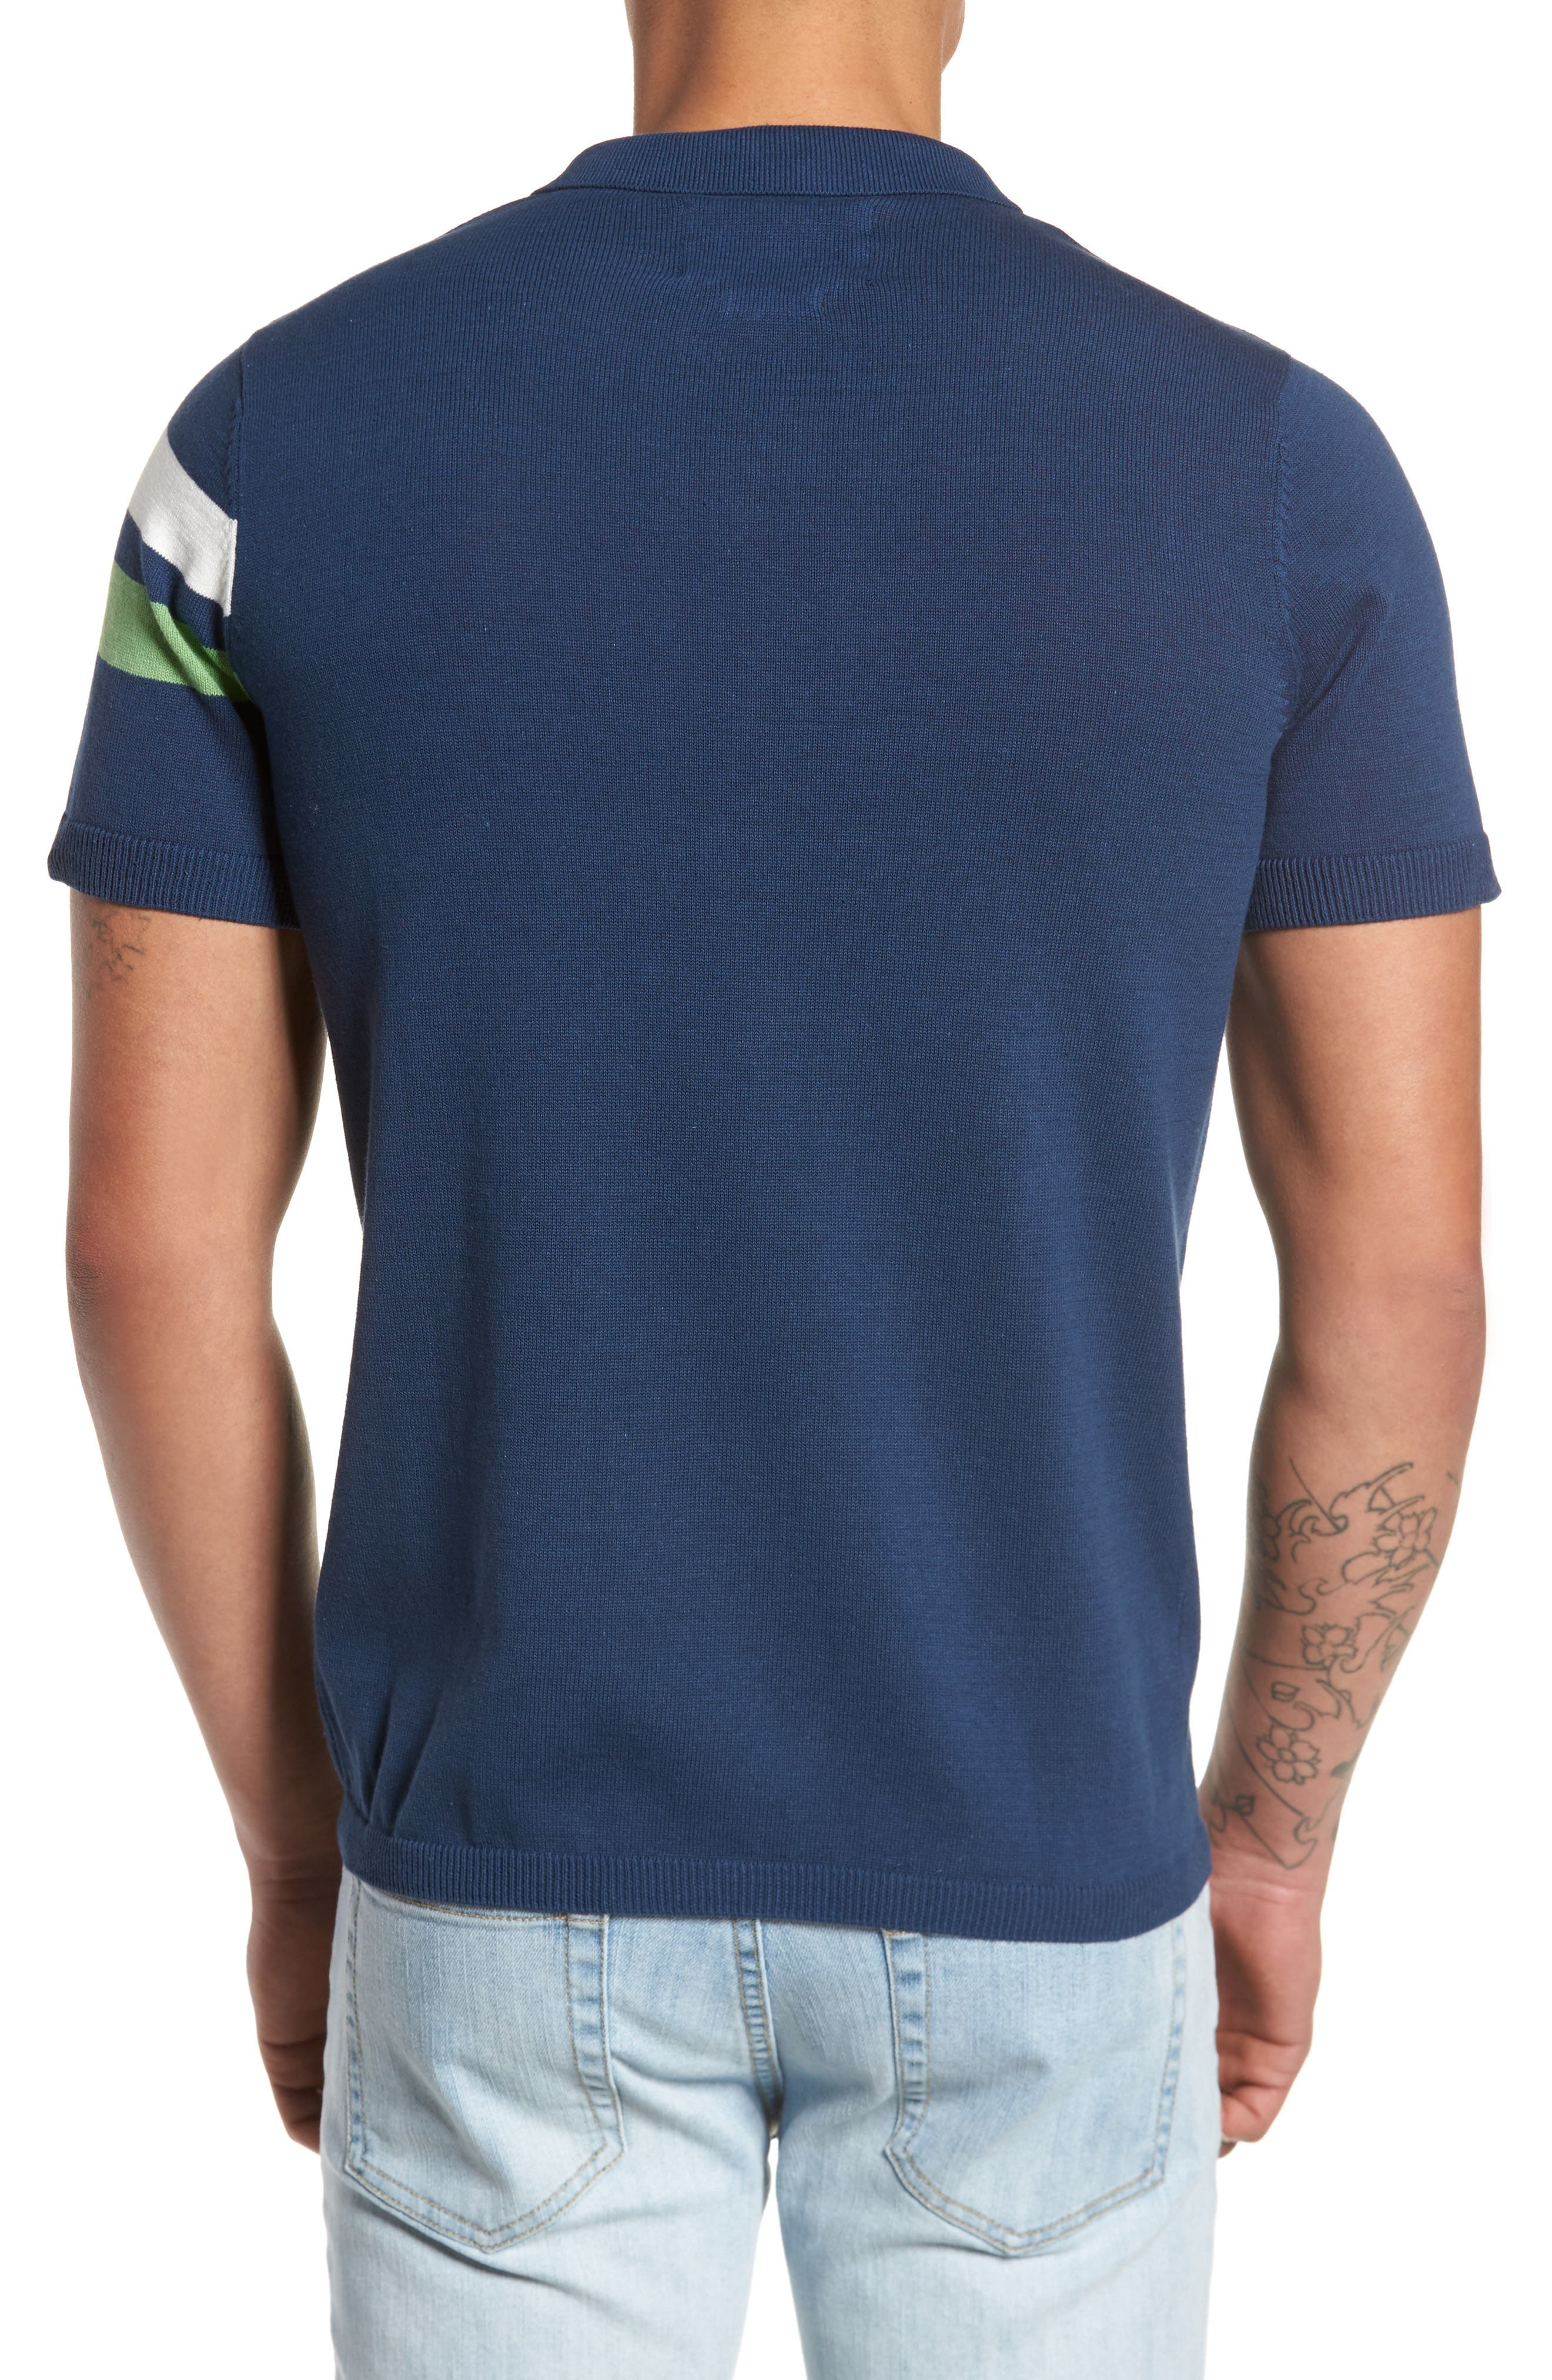 Abyss Knit Shirt,                             Alternate thumbnail 2, color,                             Navy